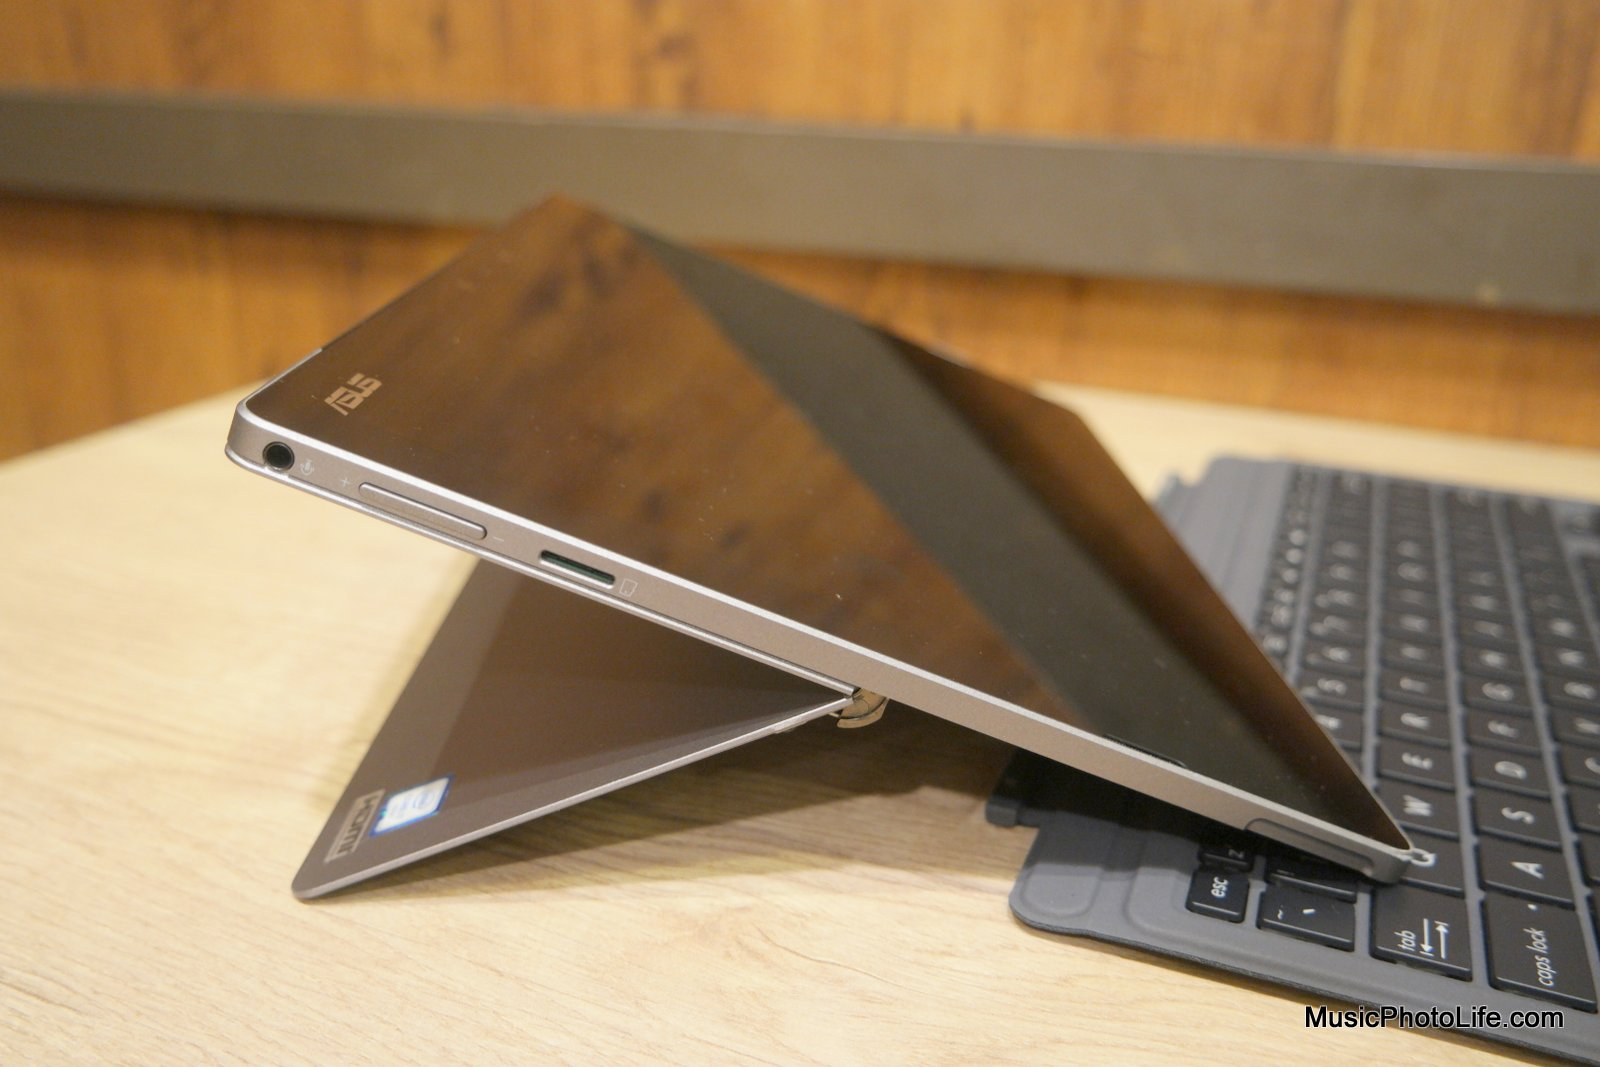 ASUS Transformer 3 Pro kickstand, review by Singapore gadget reviewer Chester Tan